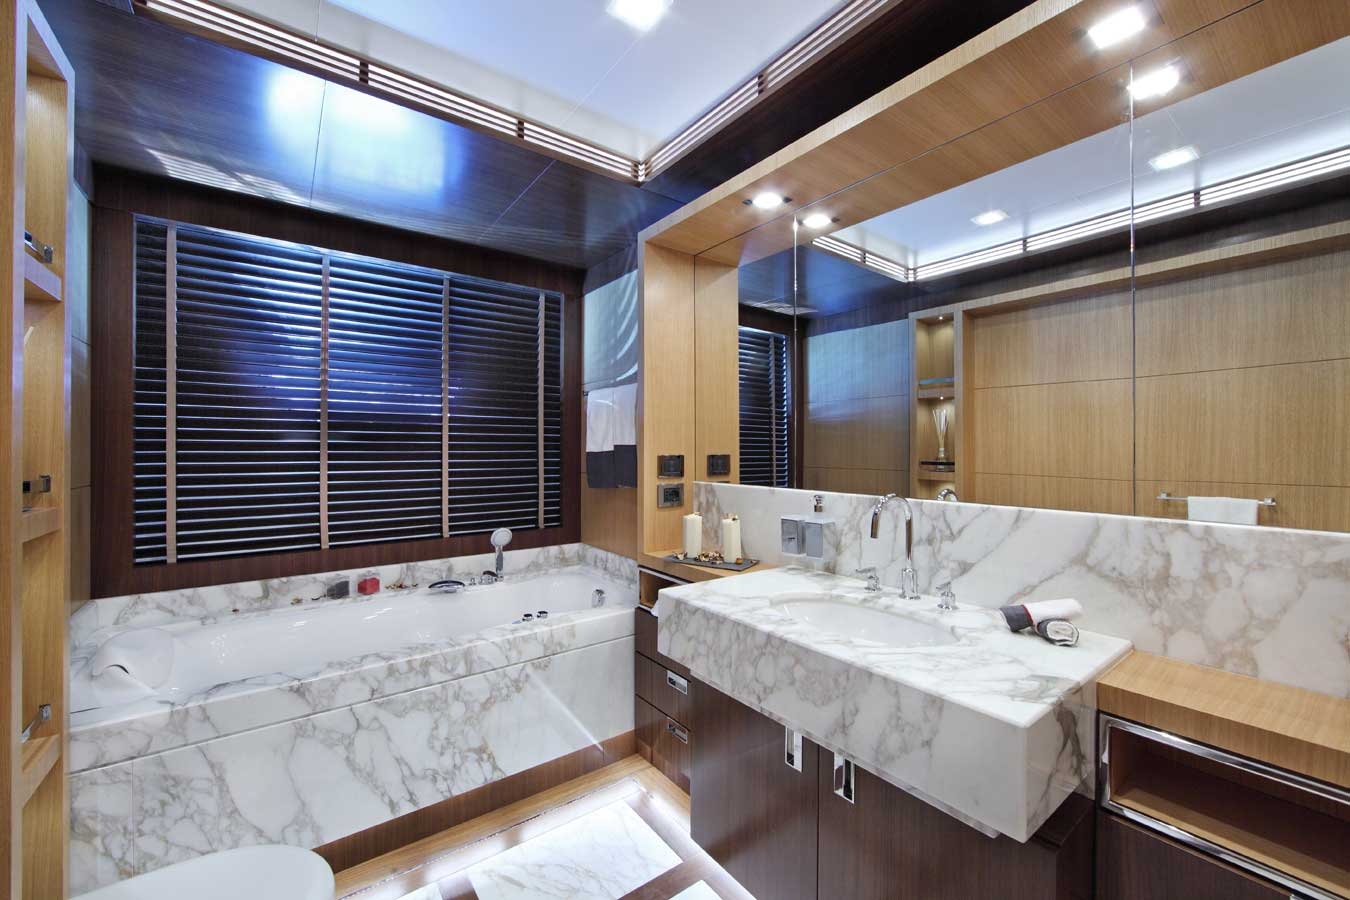 A marble bath aboard an ocean-going vessel? Why not?